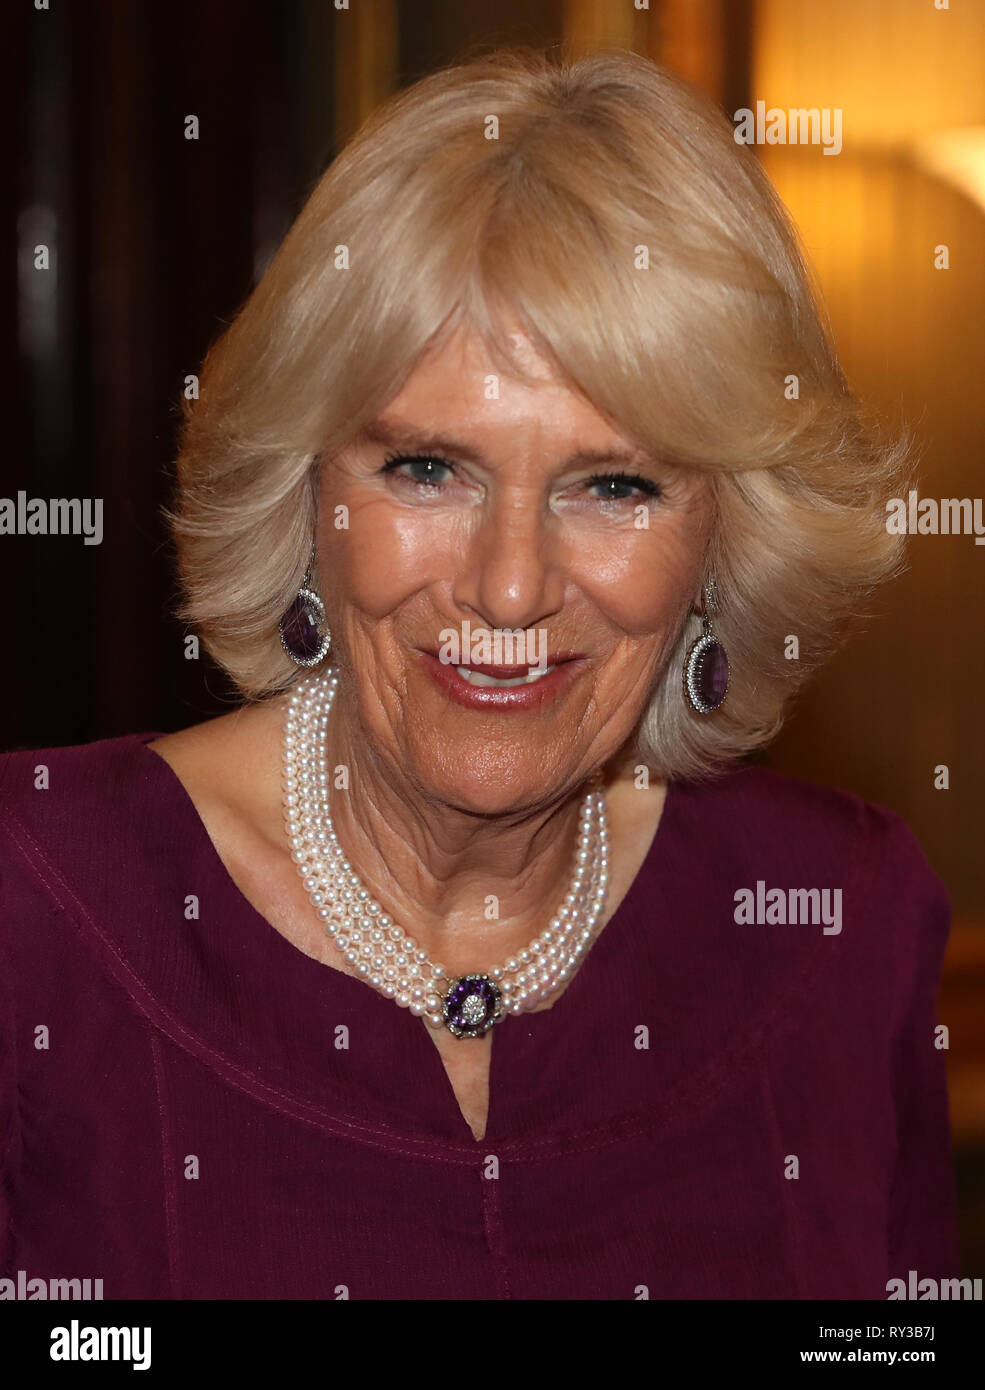 The Duchess of Cornwall at the annual Commonwealth Day reception at Marlborough House, the home of the Commonwealth Secretariat in London. Stock Photo